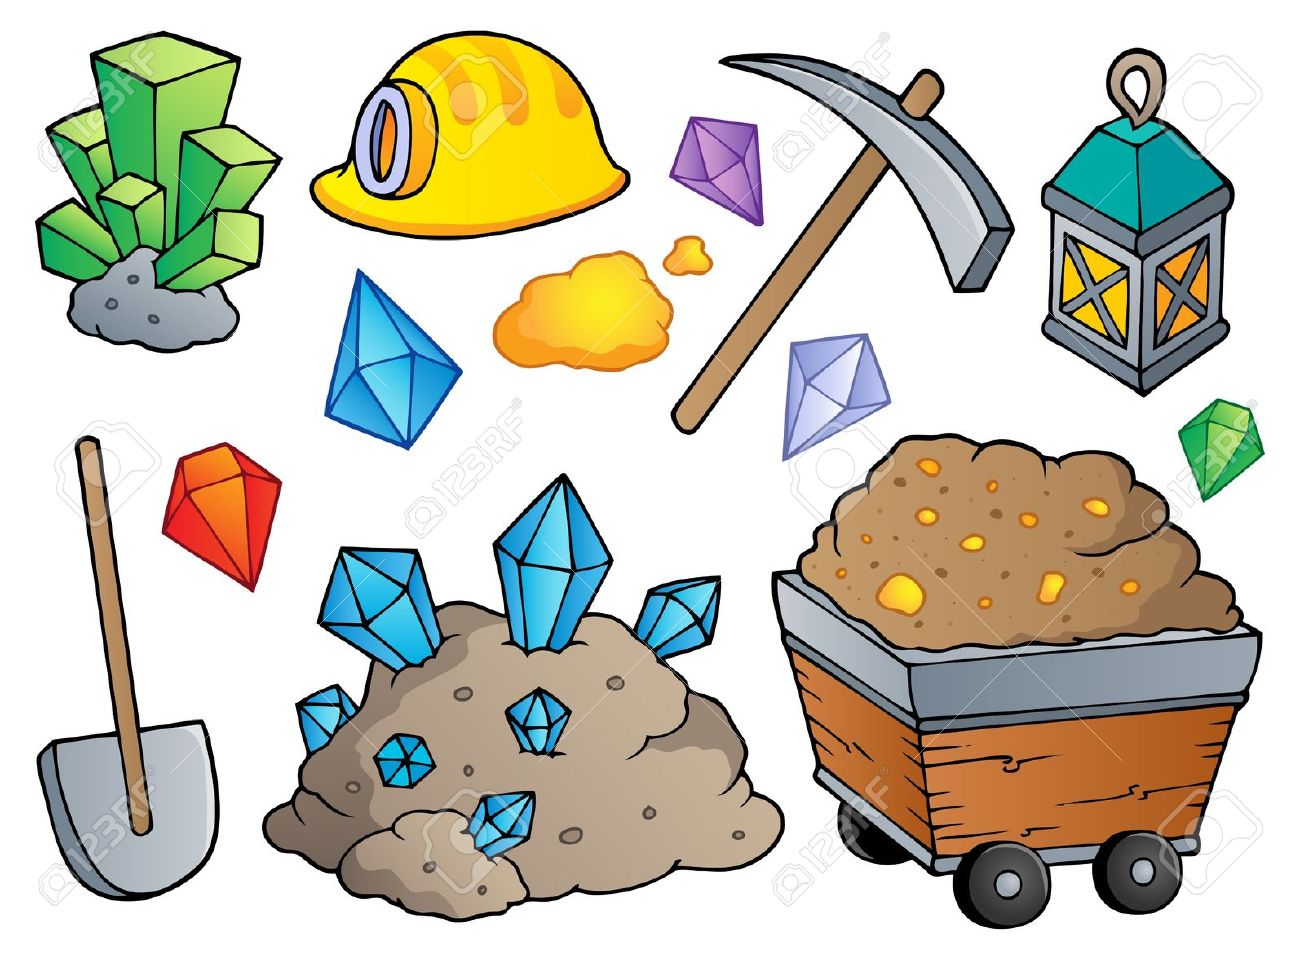 Mineral clipart #13